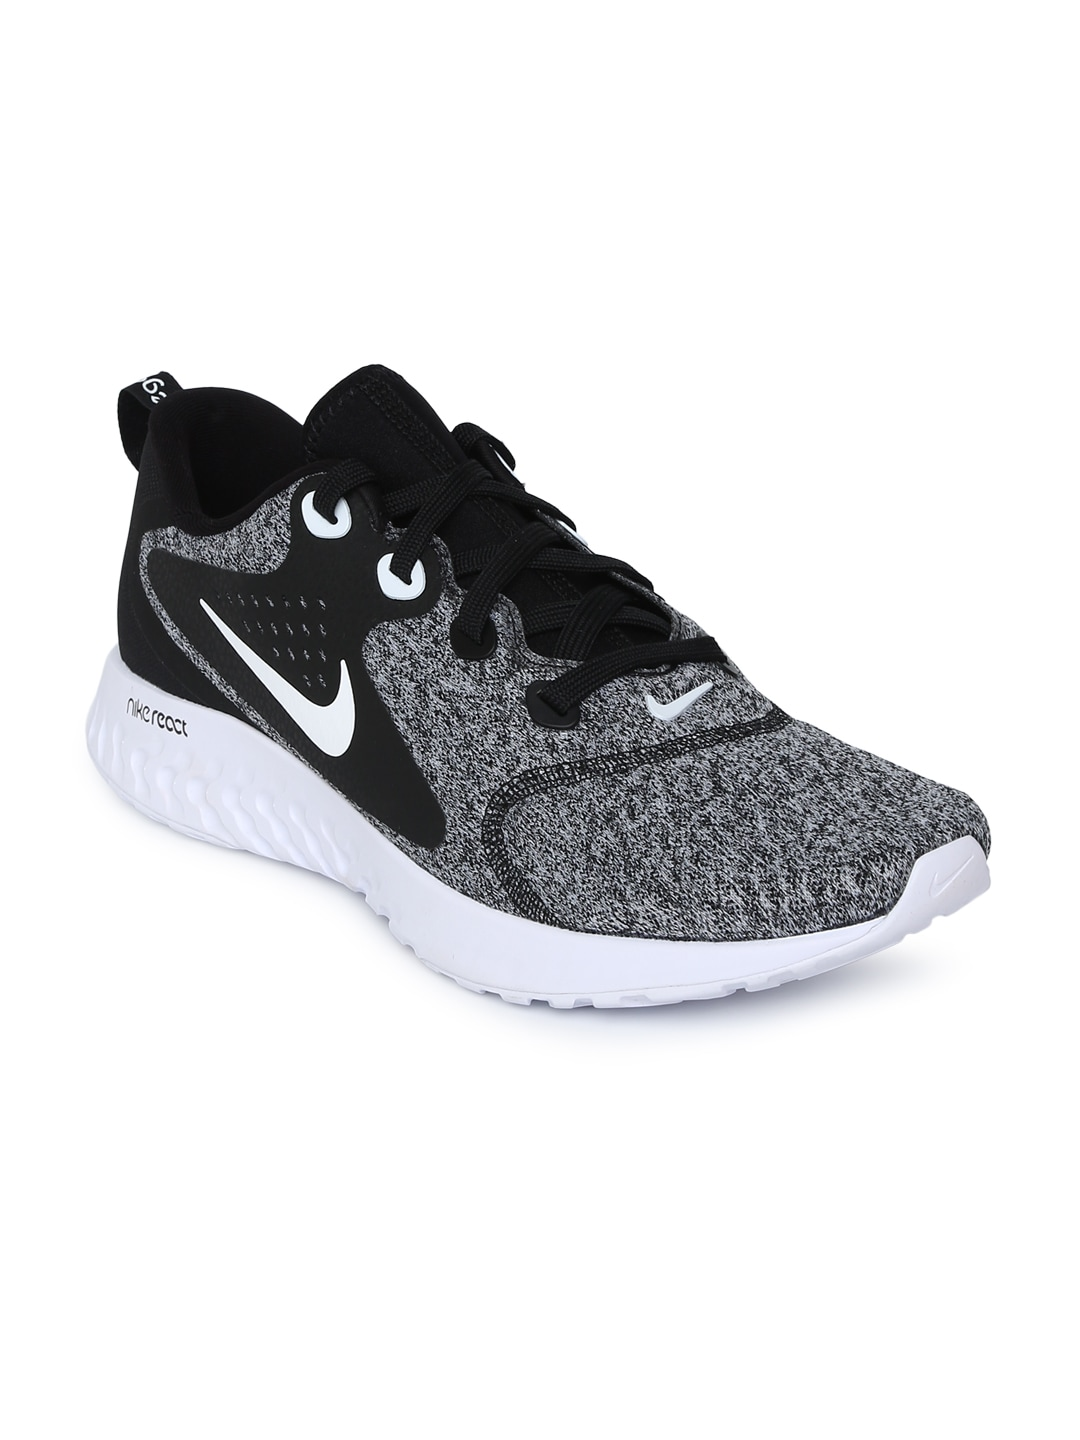 15d4281d865d Nike - Shop for Nike Apparels Online in India